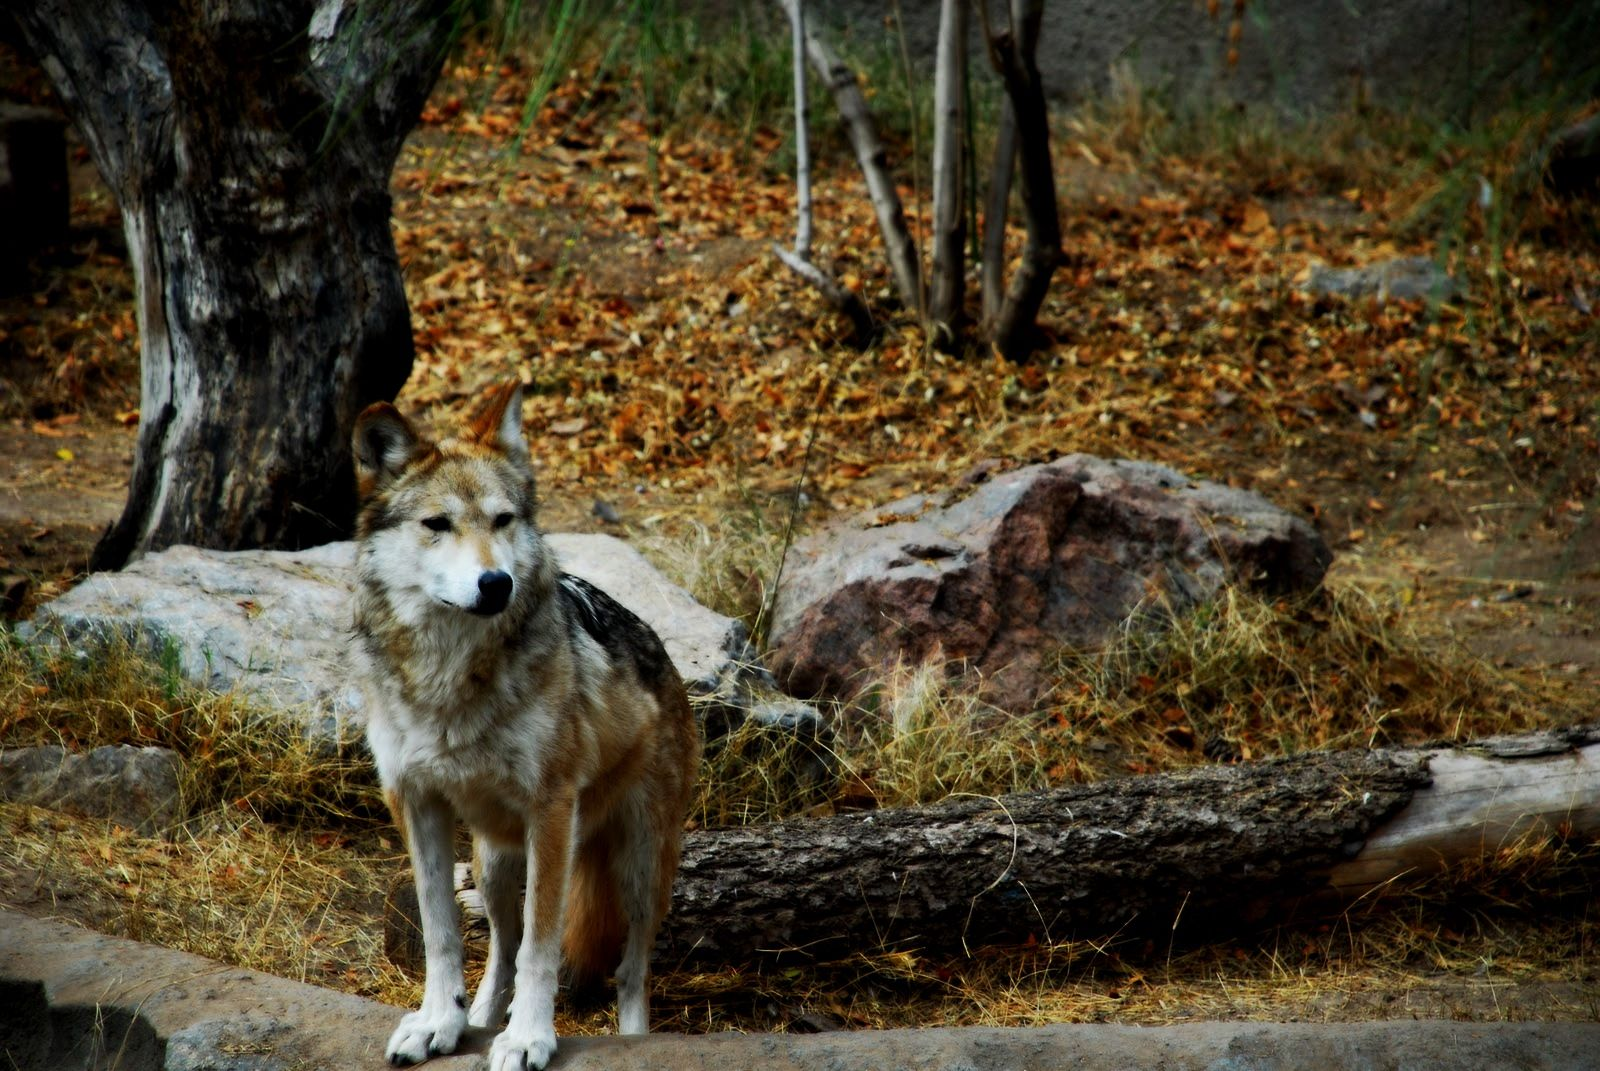 Mexican gray wolf very rare and on the critically